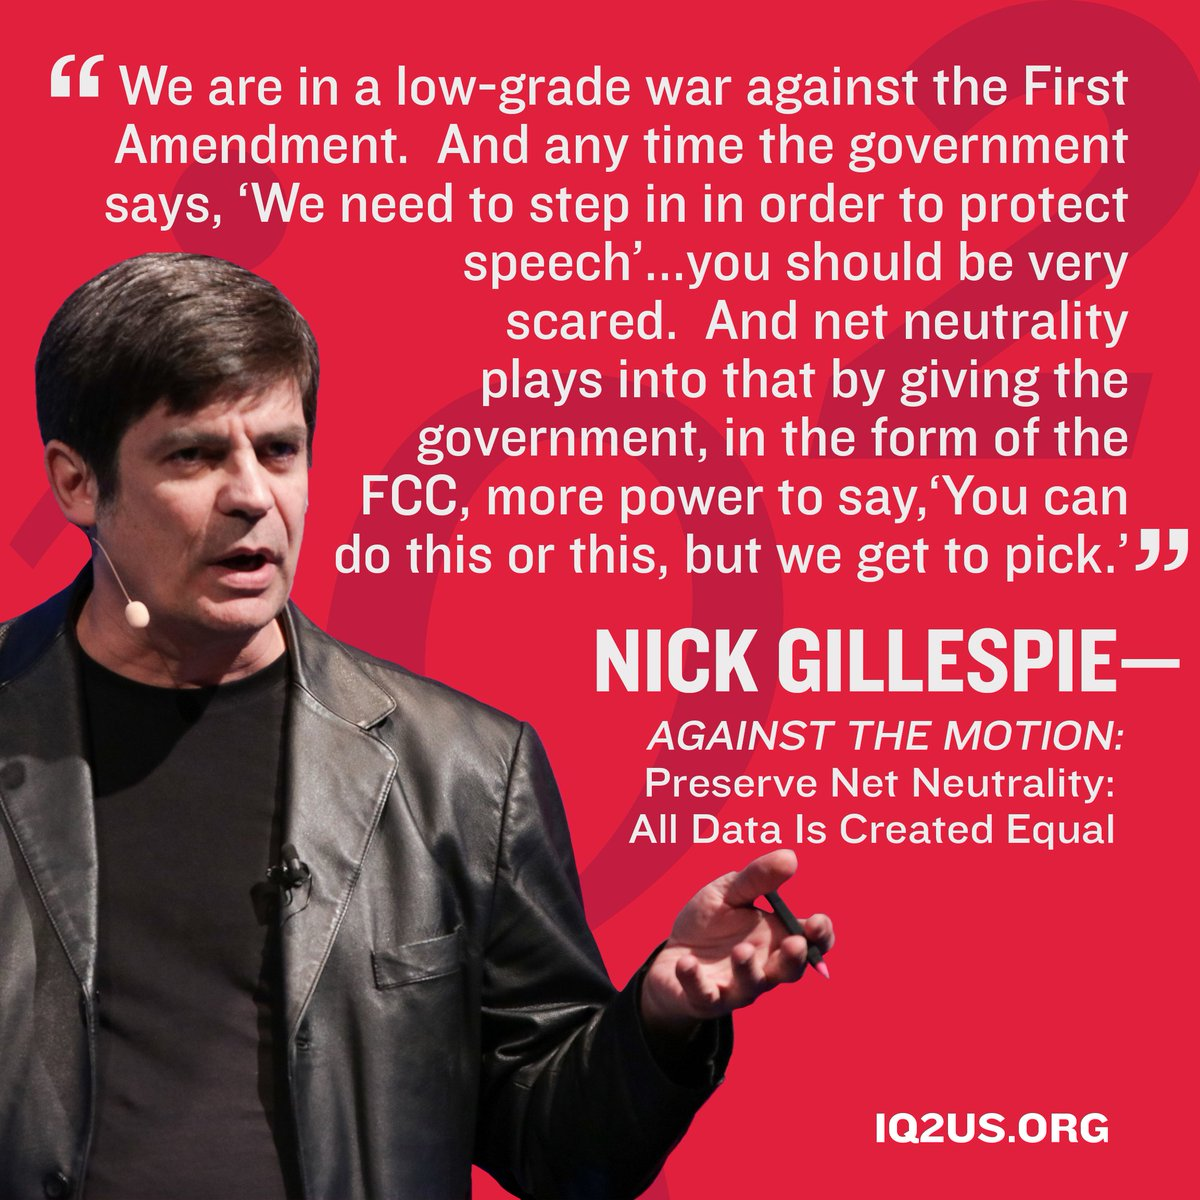 Do you agree w/ @nickgillespie? Watch the full debate 'Preserve #NetNeutrality: All Data Is Created Equal' - https://t.co/yXtWhYXFEy